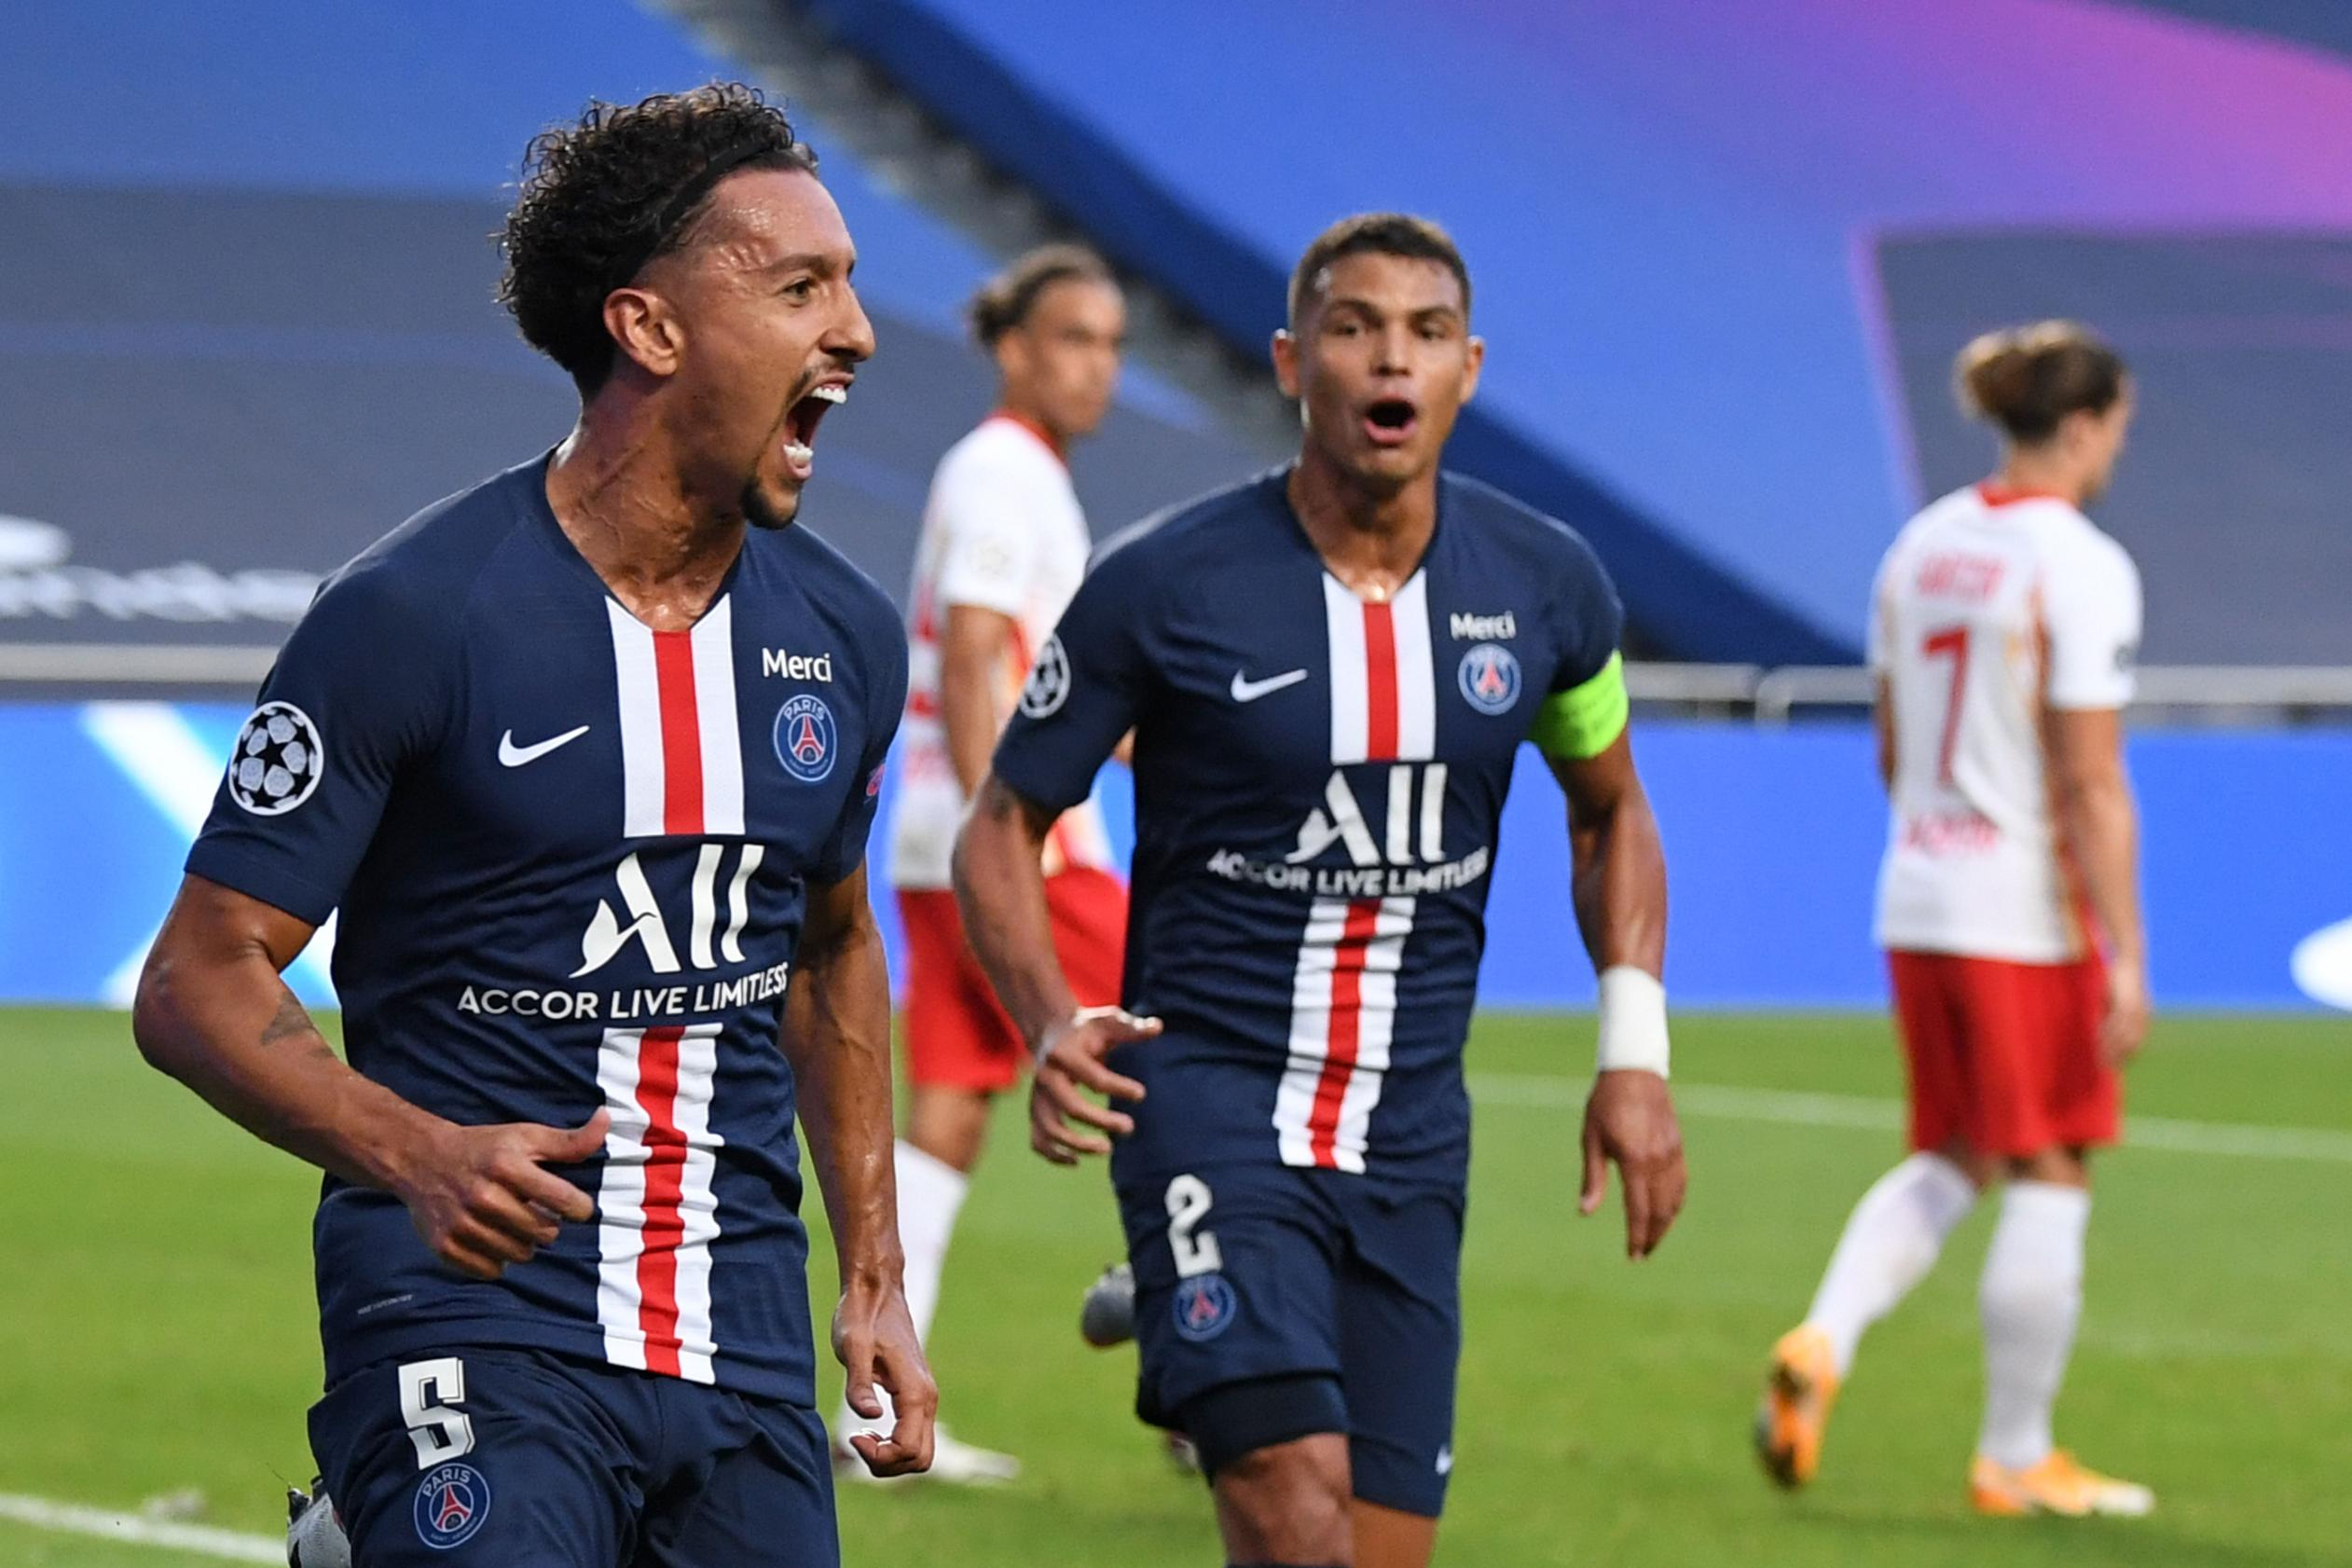 Paris Saint-Germain reaches first ever Champions League final with demolition of RB Leipzig